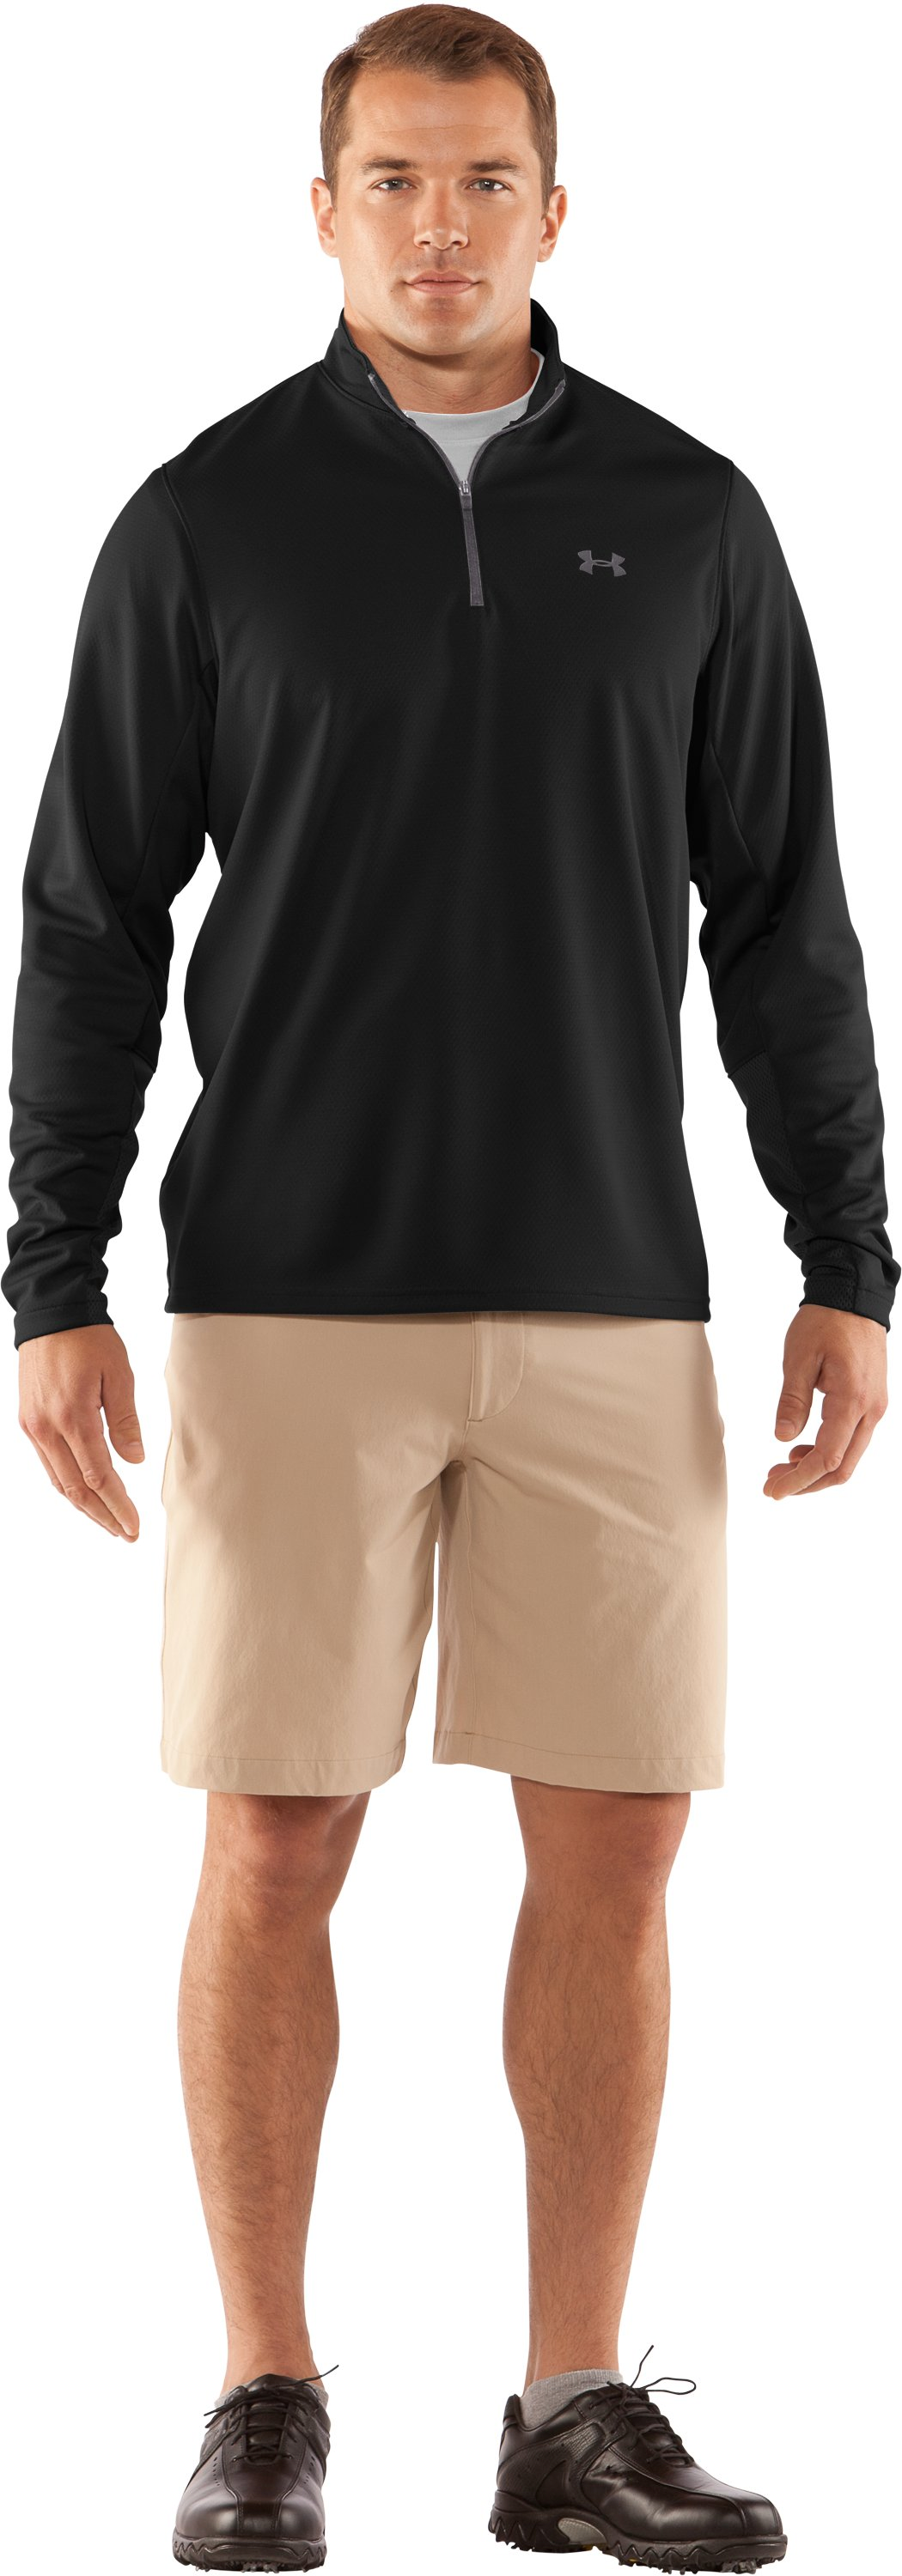 Men's AllSeasonGear® ¼ Zip Golf Jacket, Black